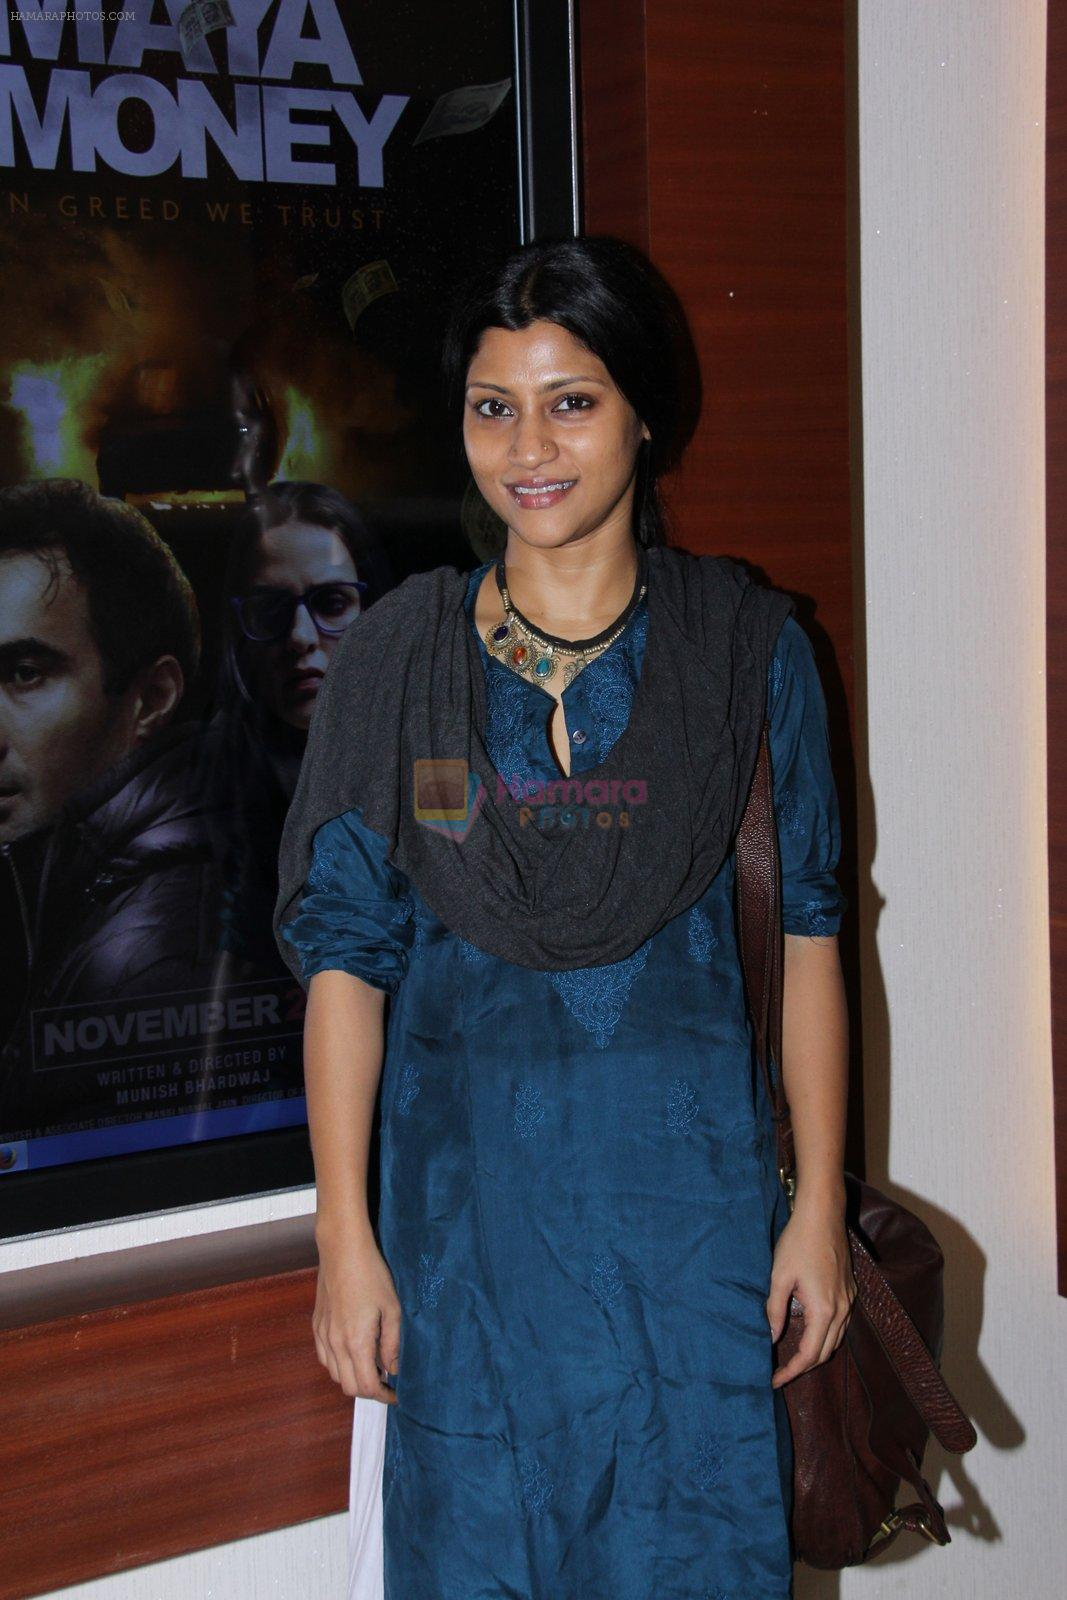 Konkona Sen Sharma at Moh Maya Money screening on 24th Nov 2016